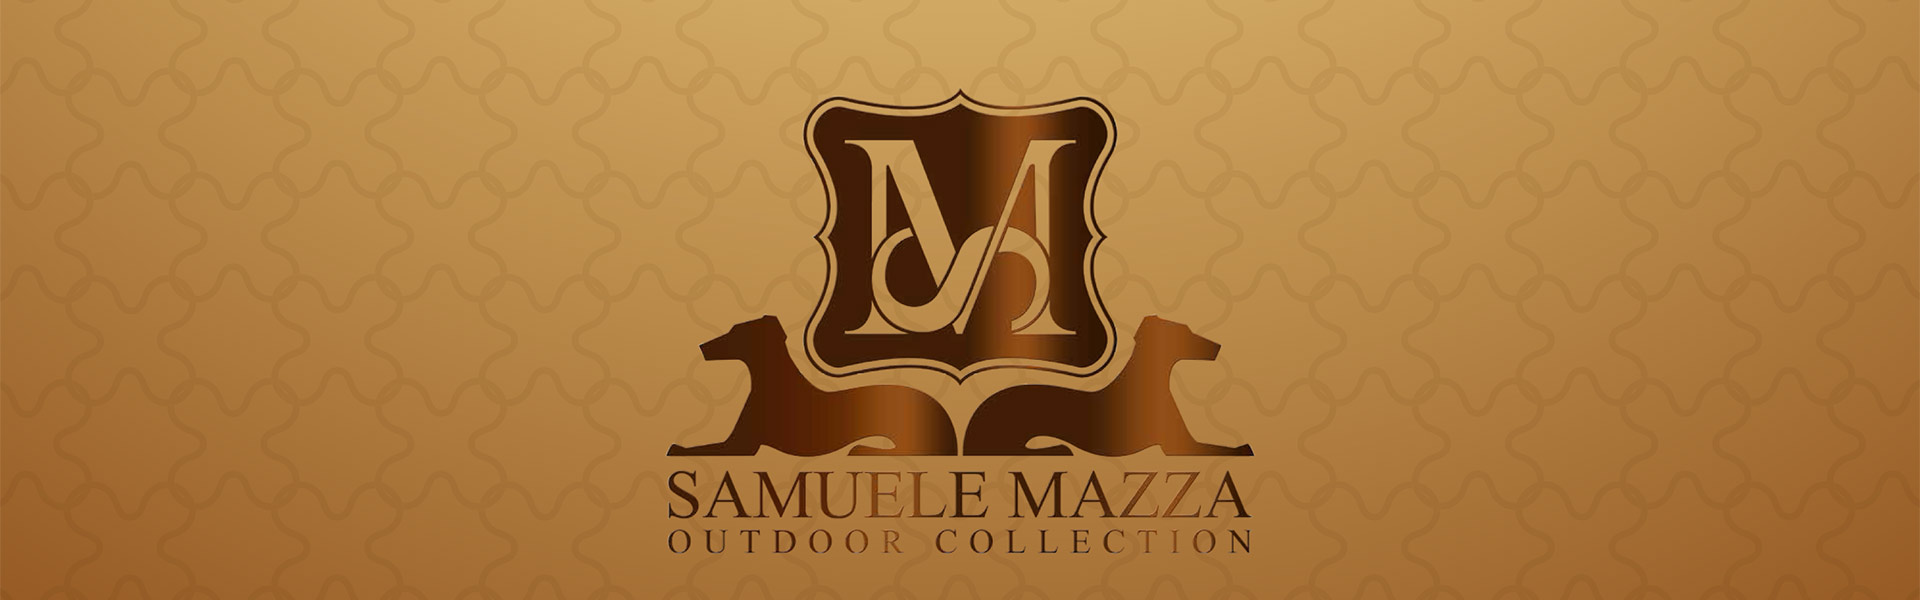 DFN Samuele Mazza Outdoor collection catalogues download